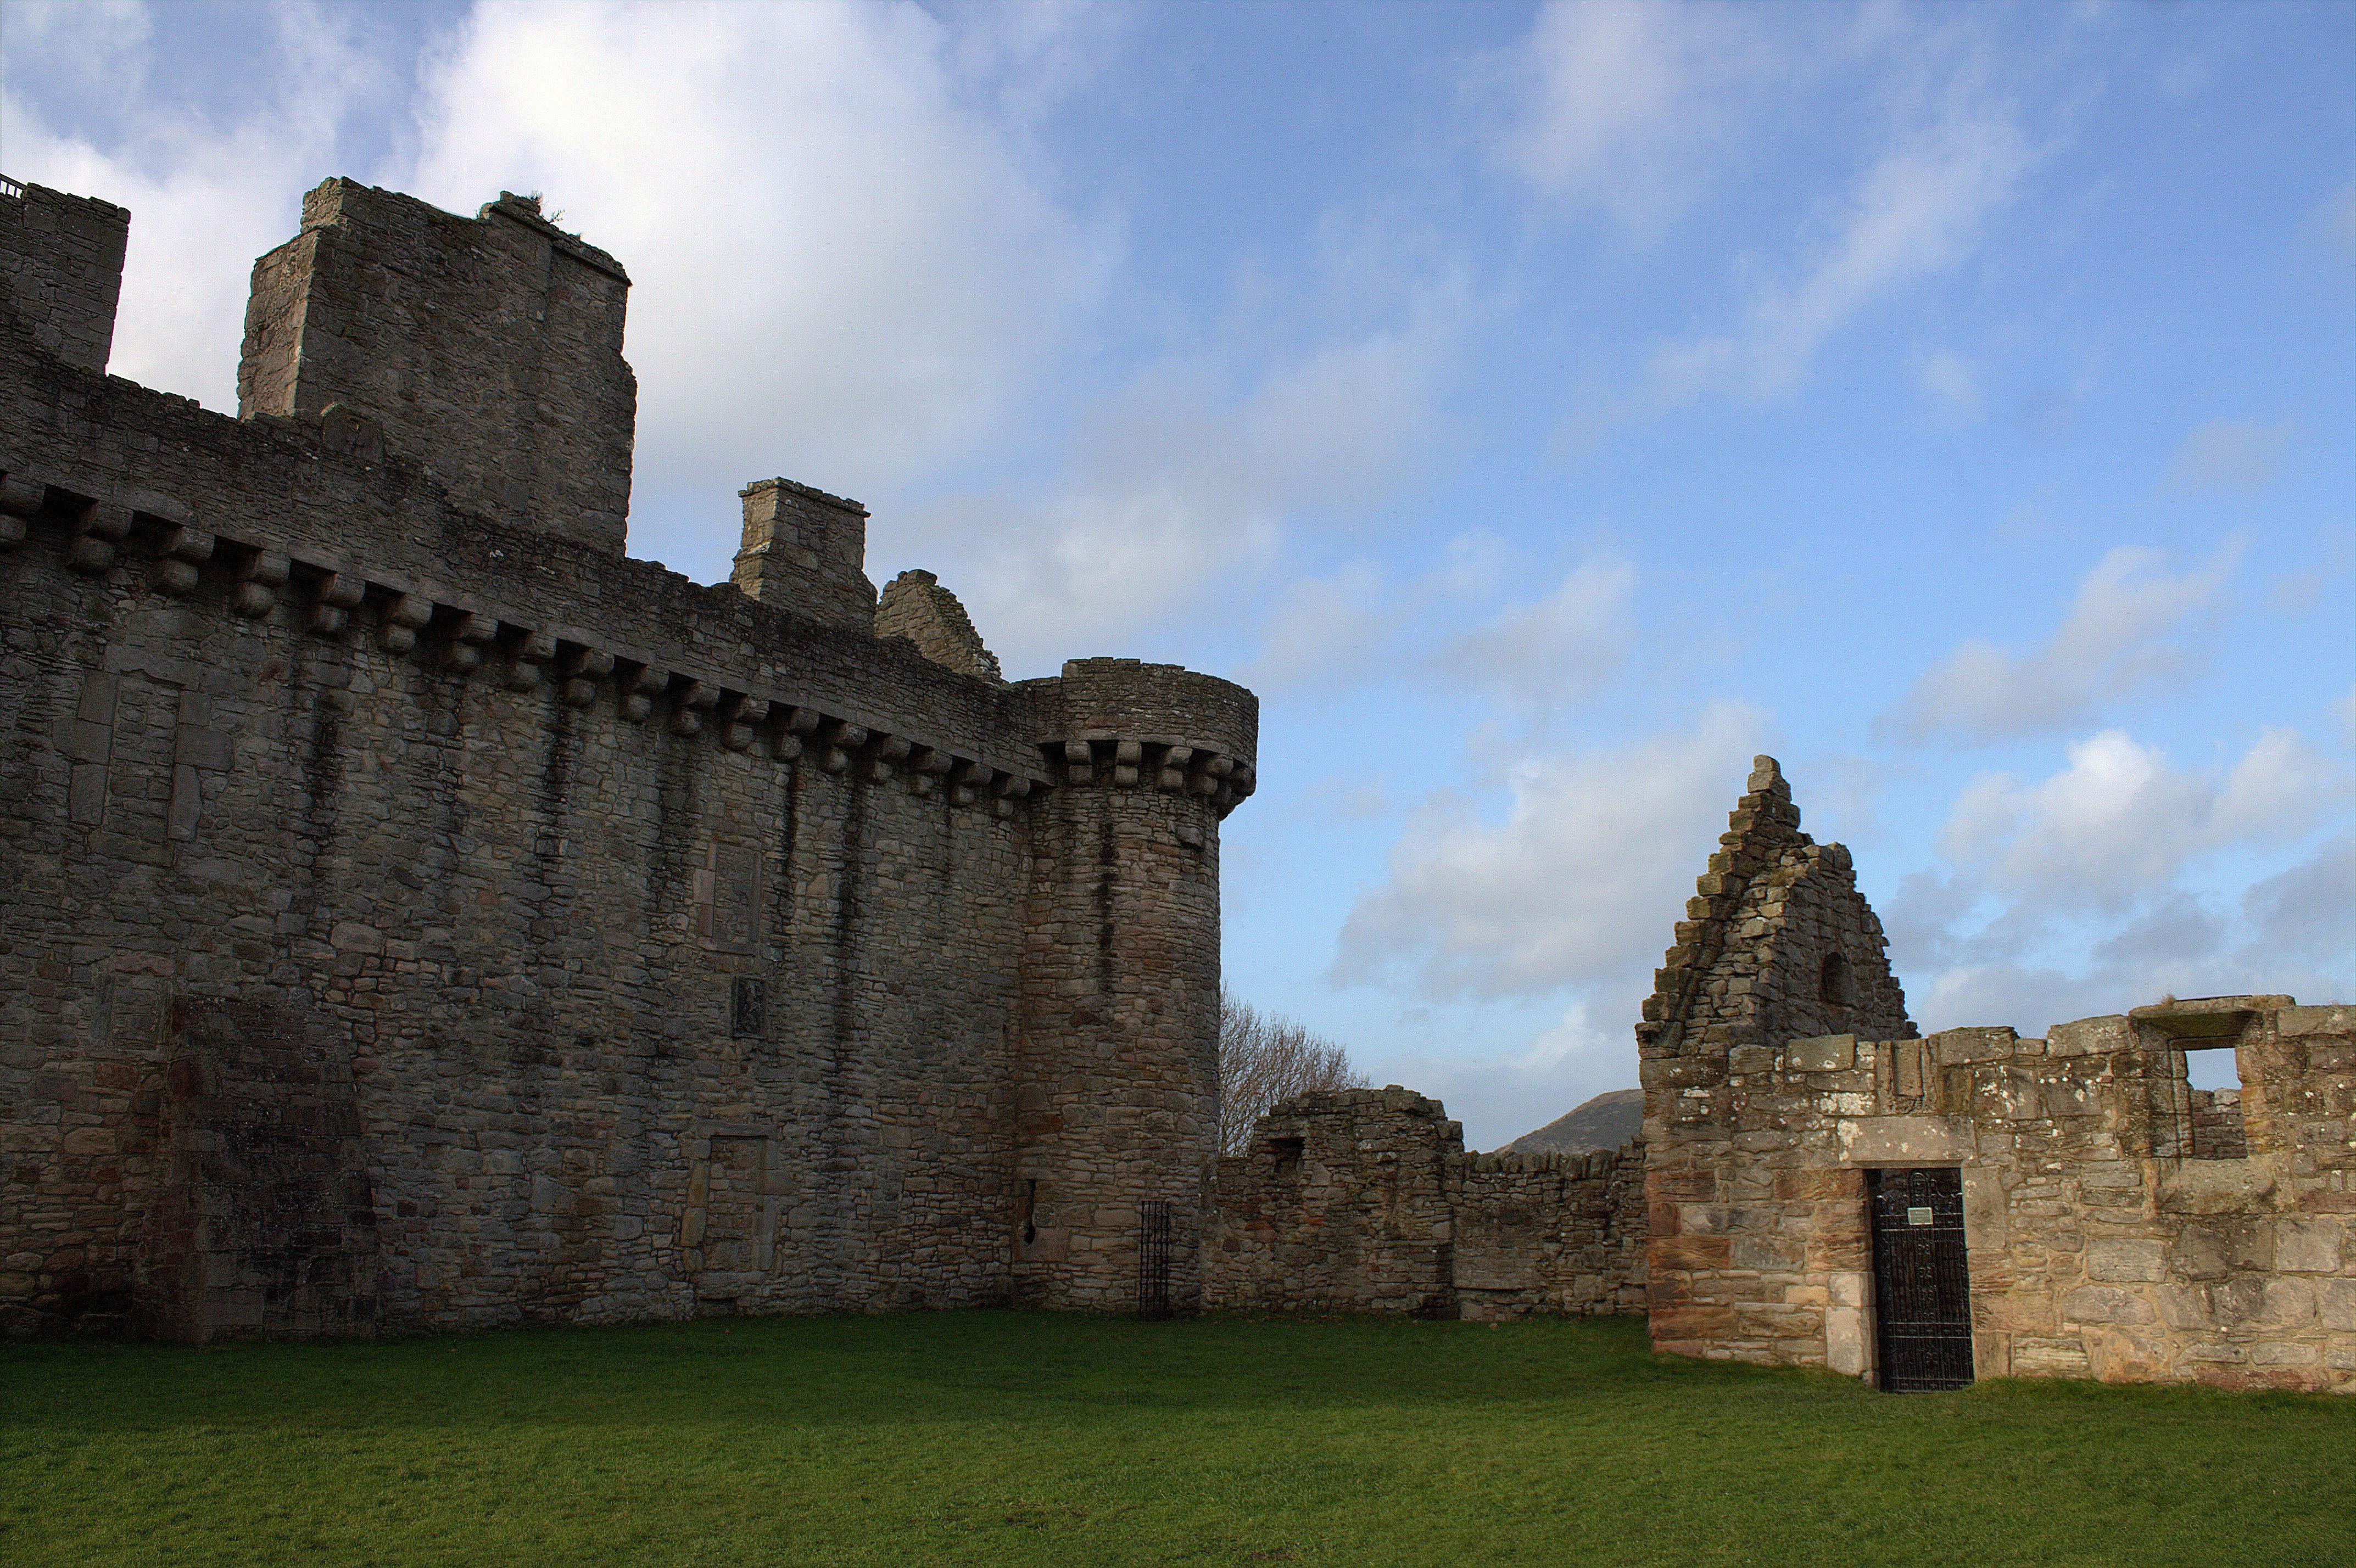 46. Craigmillar Castle, Edinburgh, Scotland